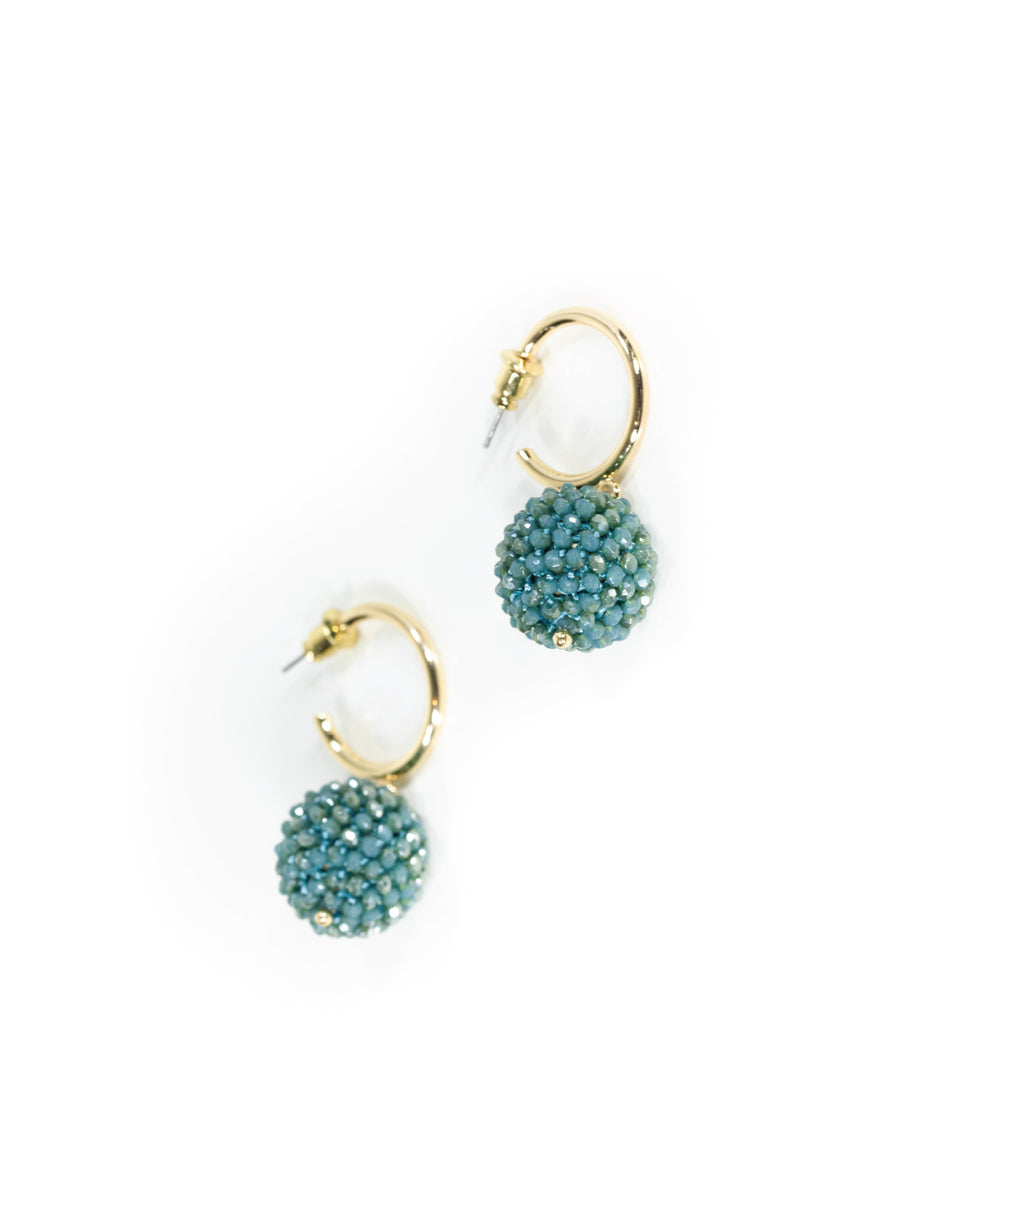 EARRINGS - Adagio Teal